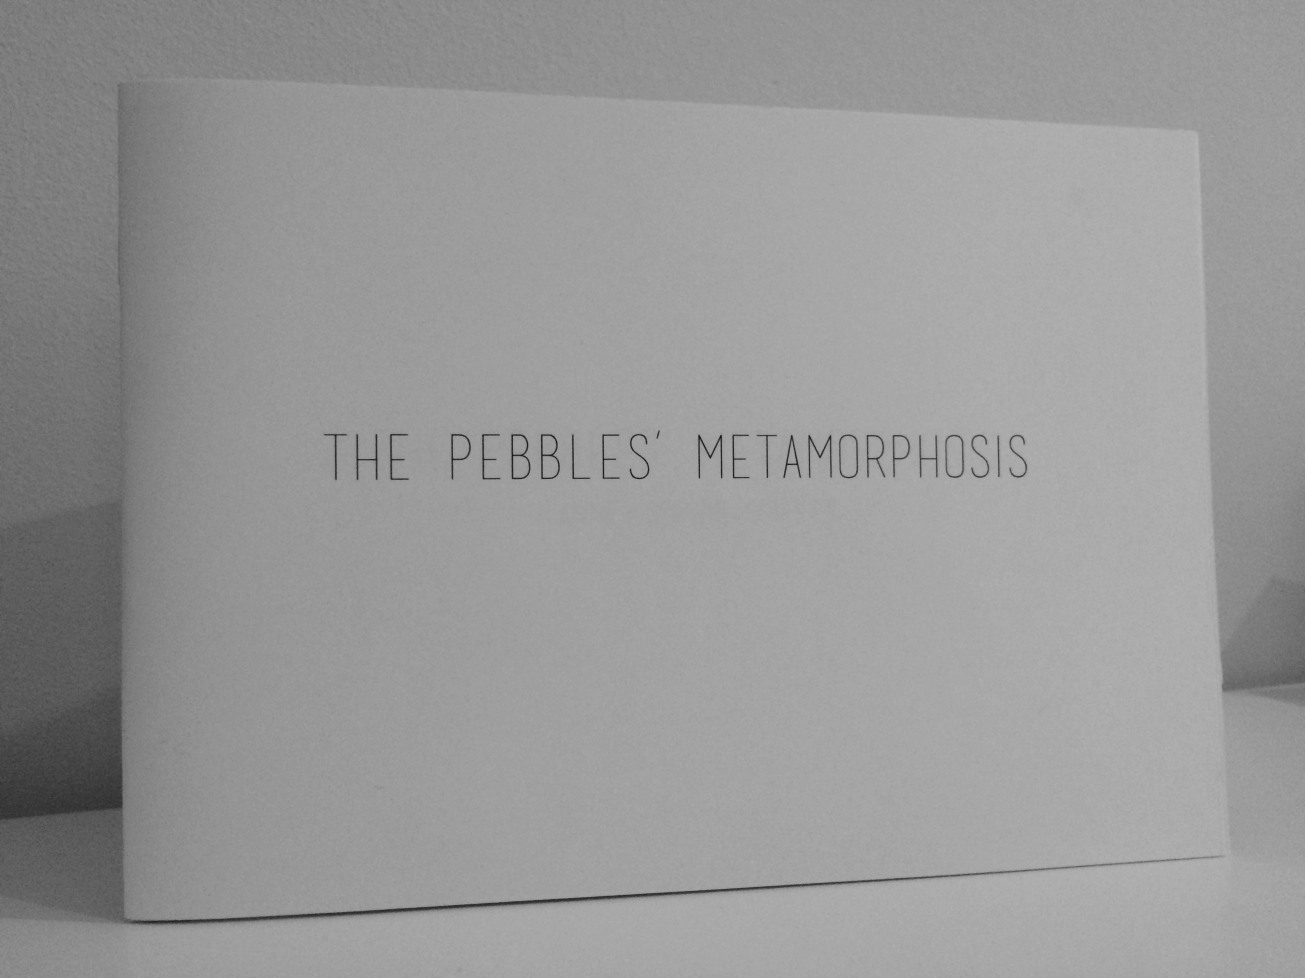 The pebbles' metamorphosis - launch - Anne-Sophie Coiffet